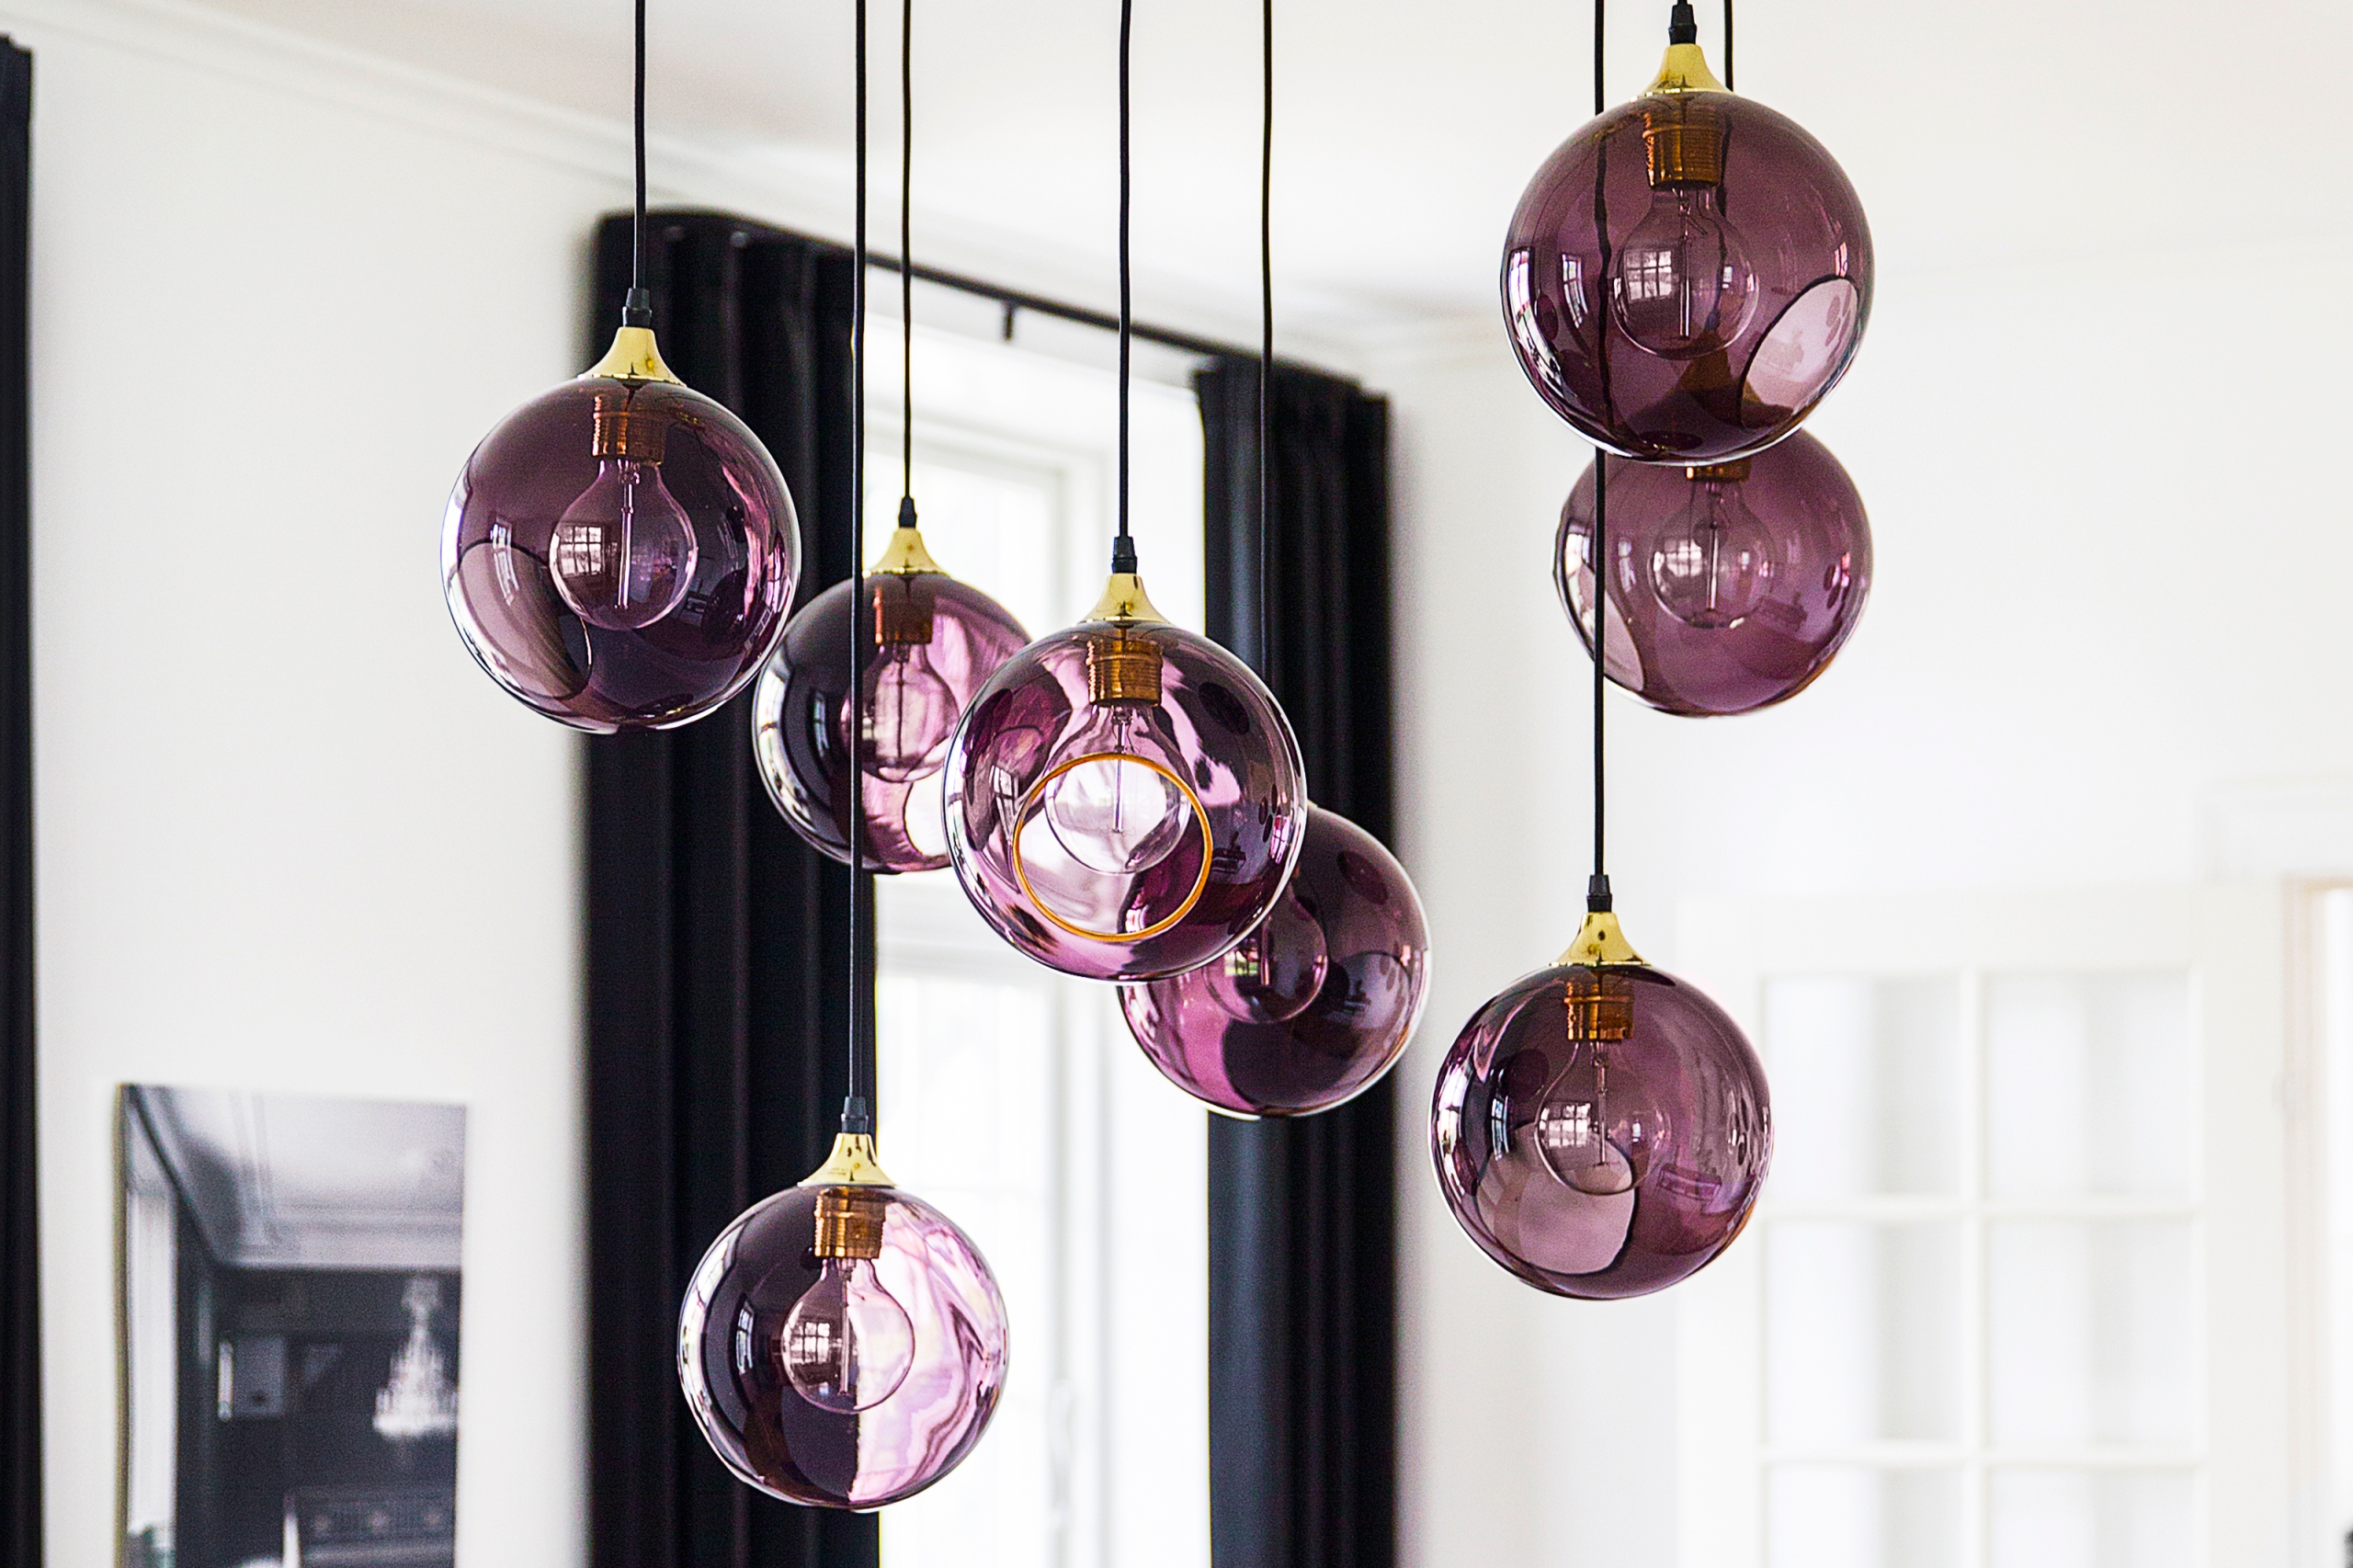 Cluster of purple globe lights hanging in a white room